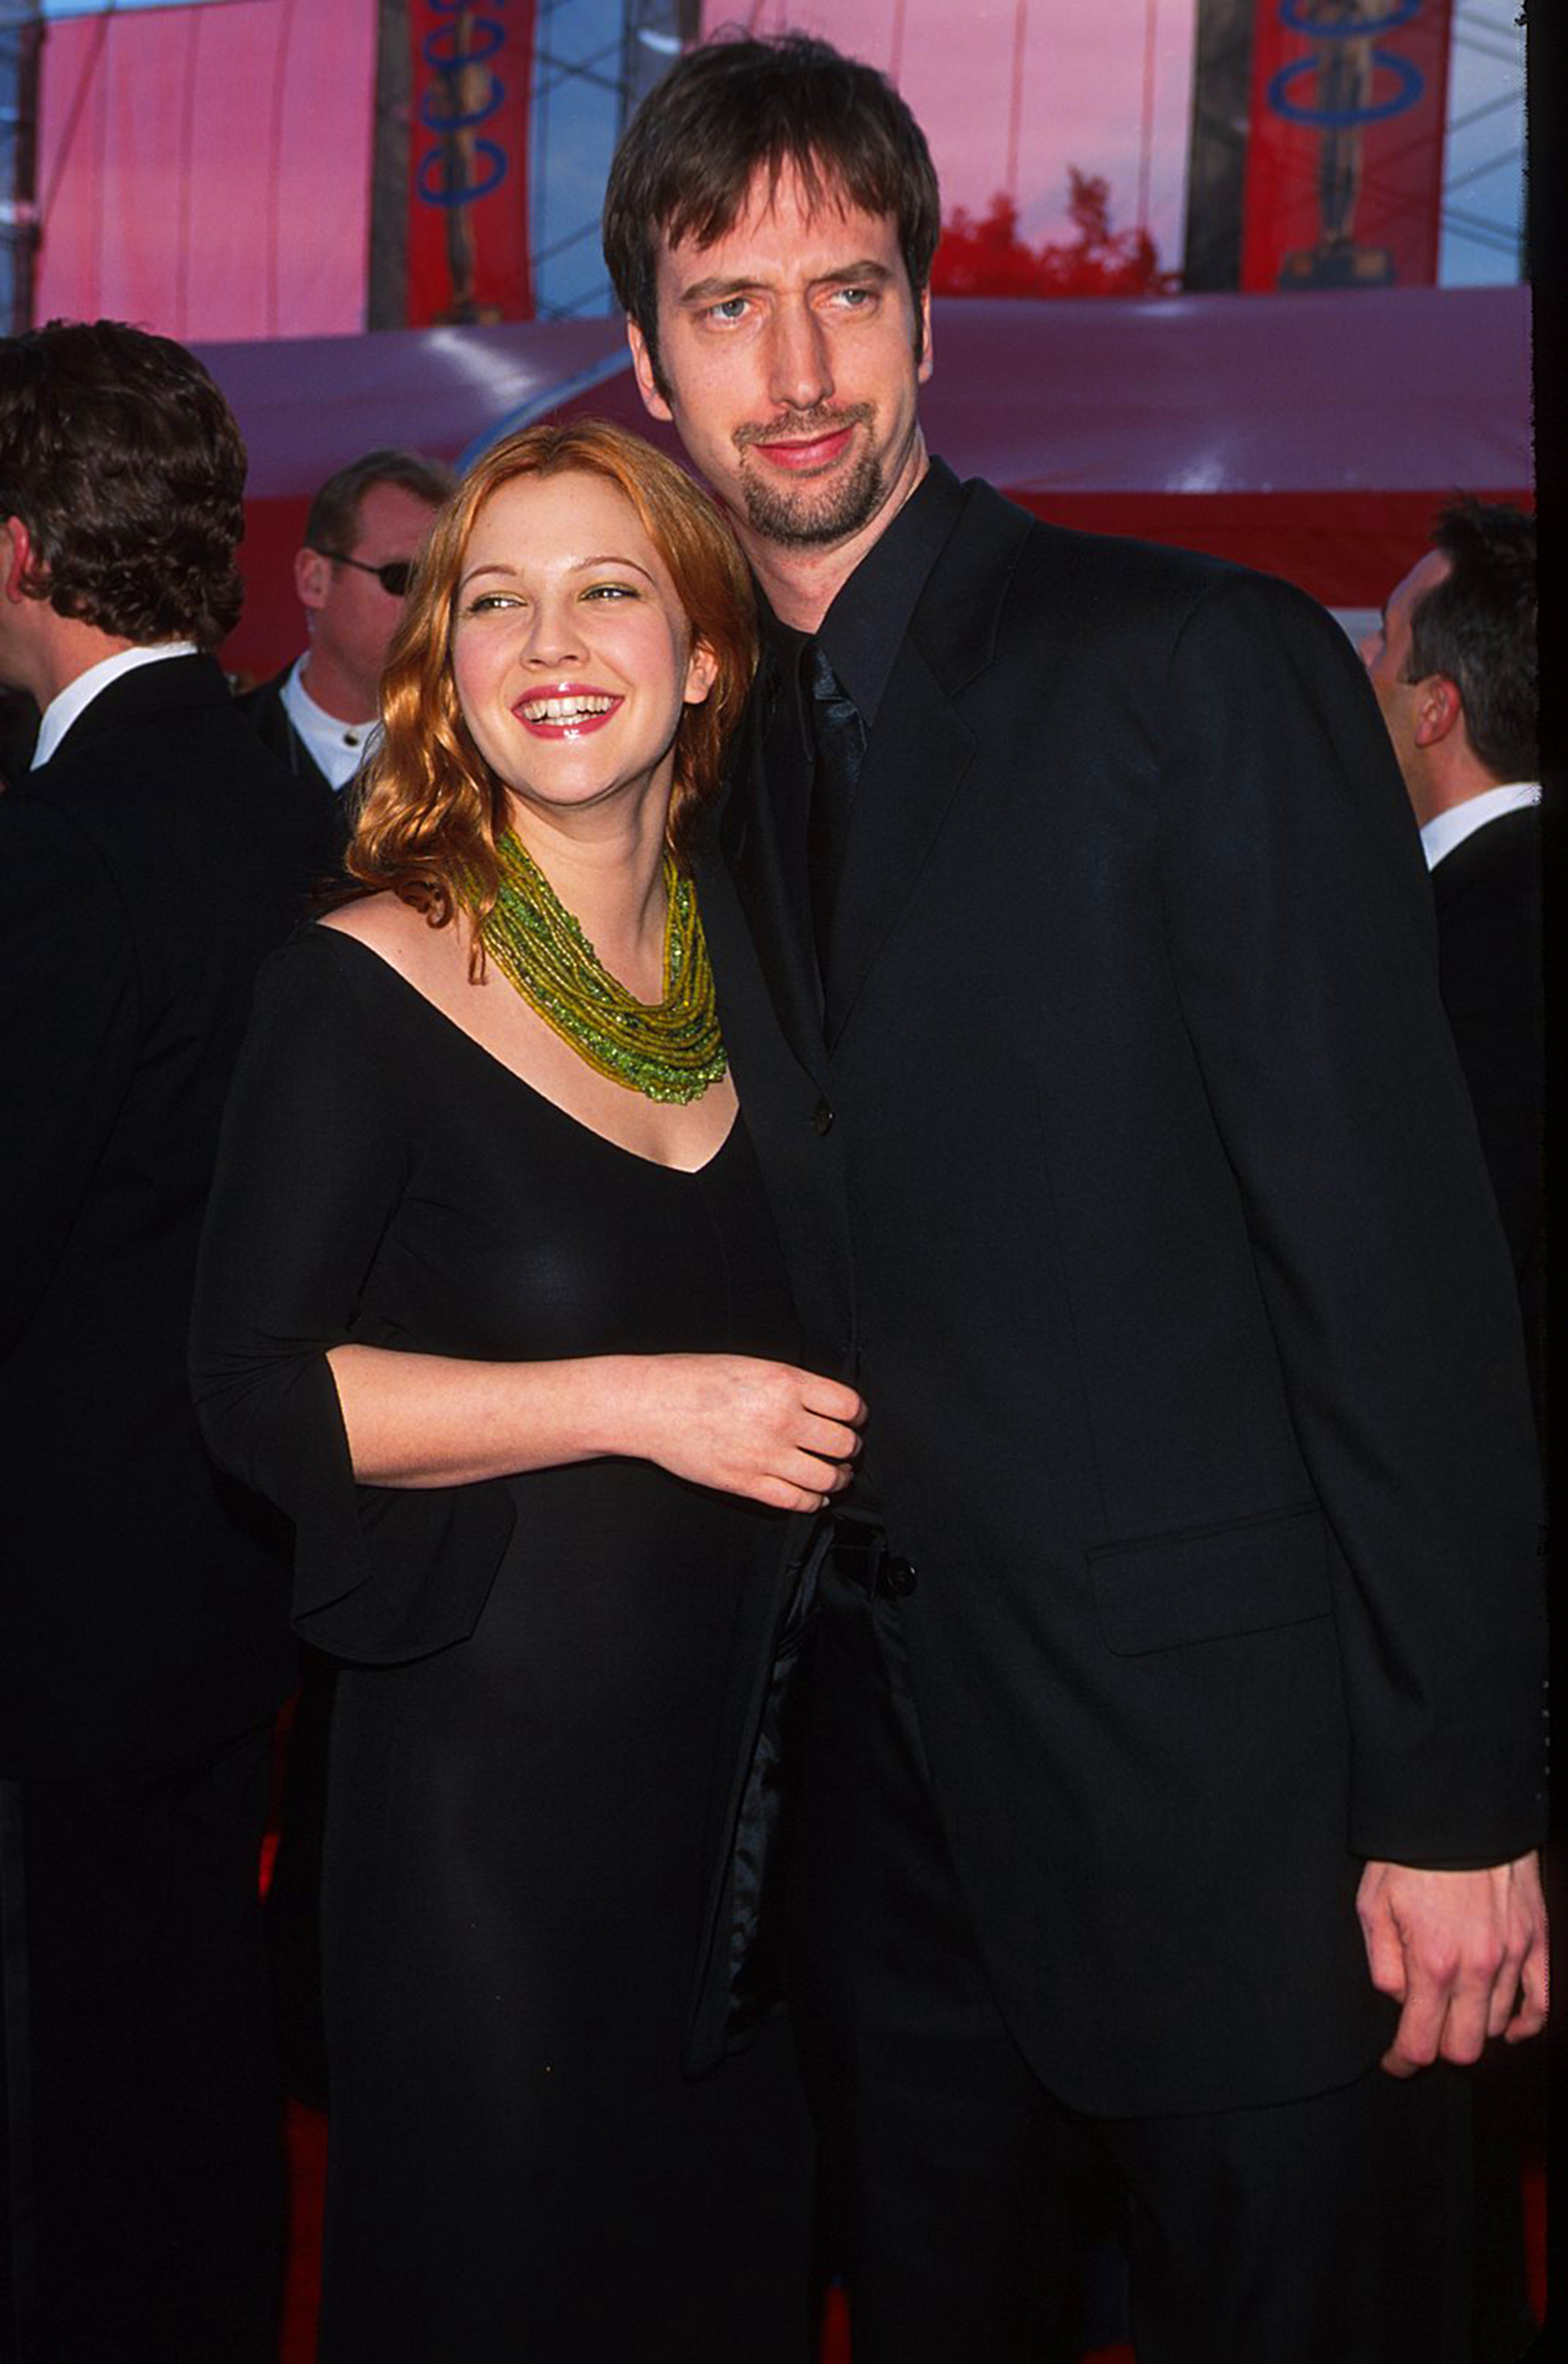 """Hollywoods shortest marriages - """"We got a divorce,"""" the comedian, who exchanged vows with Barrymore in July 2001, told USA Today. """"That's basically where it stands. I'm not going to lie about it; it's upsetting to me. I wanted it to work."""""""